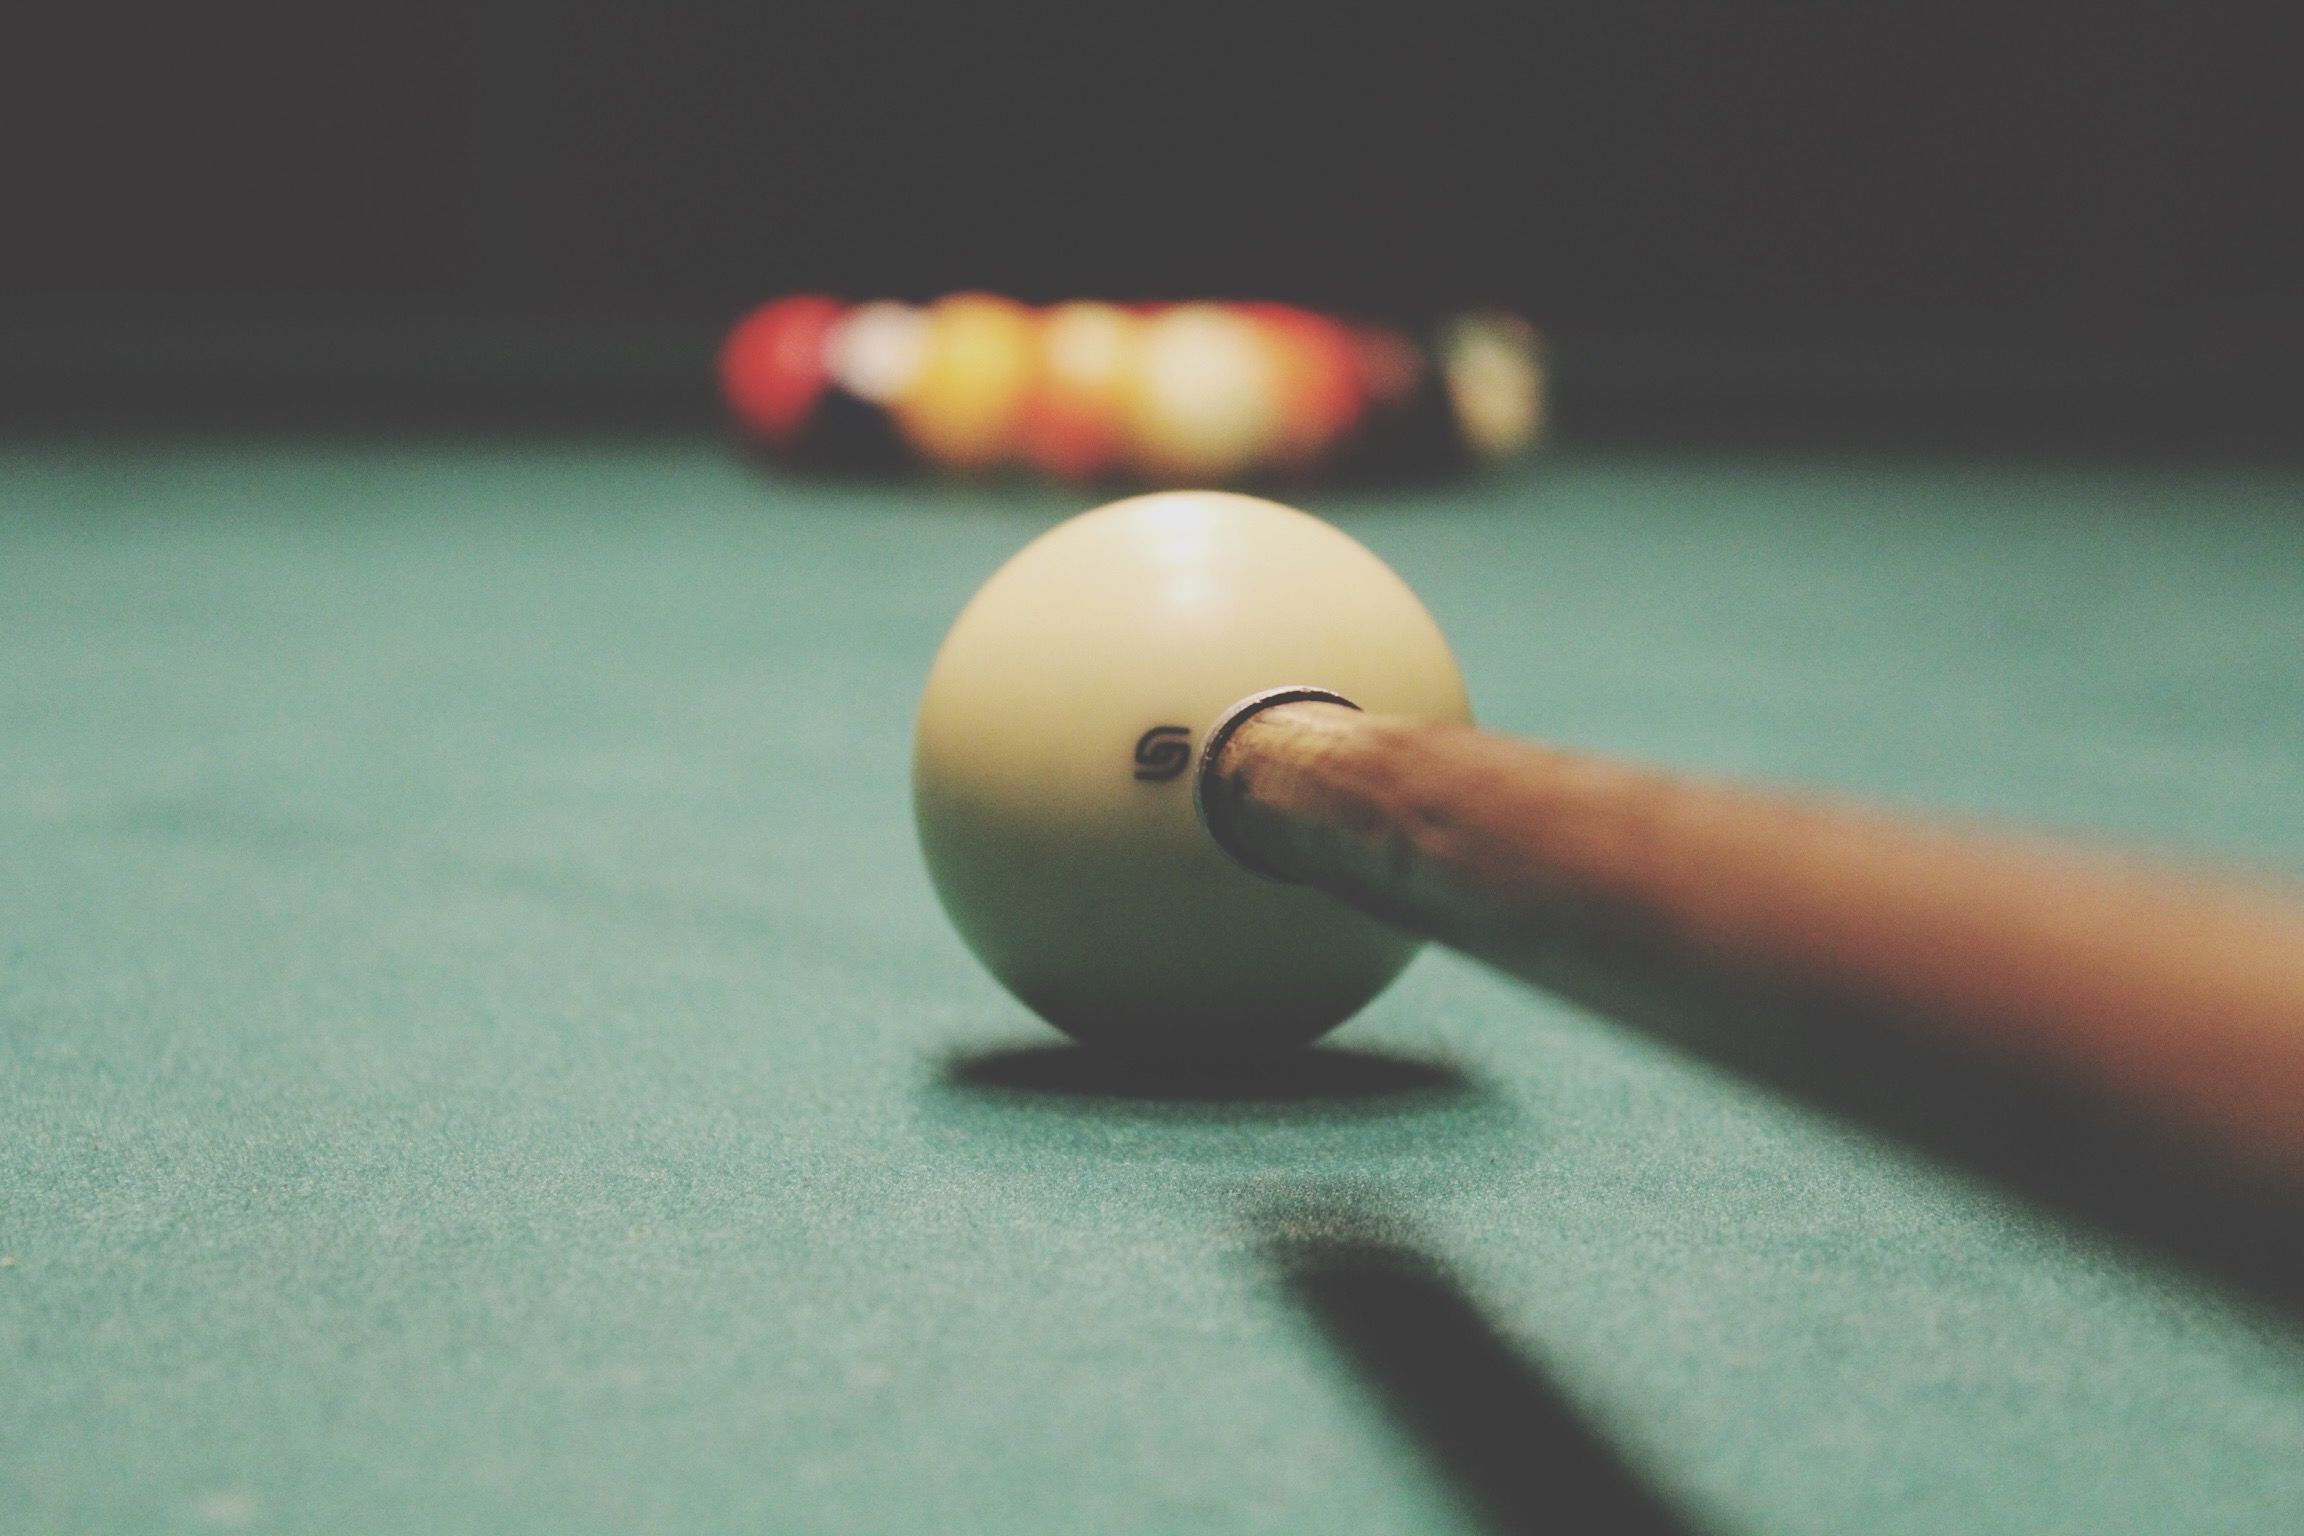 billard aramith pool at en table pro kugeln billardpro photo super billiard de balls mm